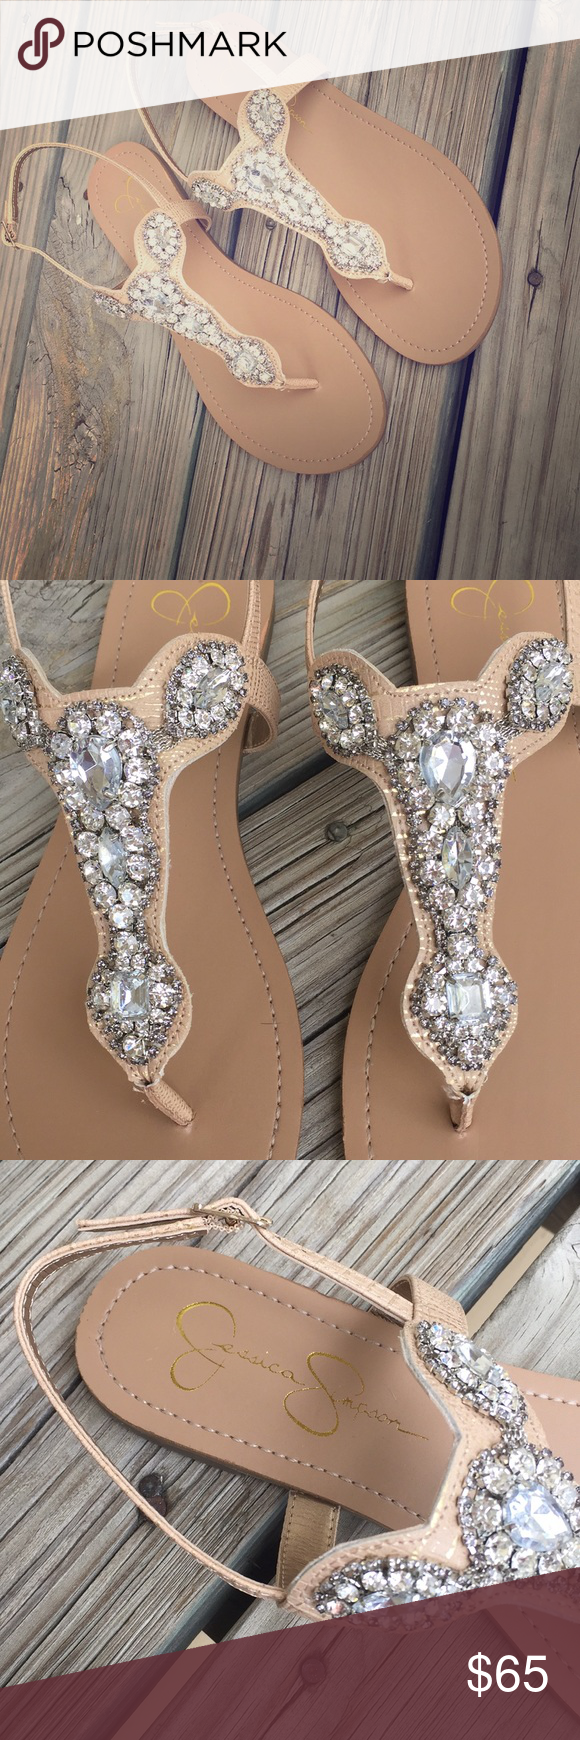 aa61d3a5e06f1 NWOB Jessica Simpson Jeweled Thong Sandal NWOB!! Wish they were my size  .... Most beautiful jeweled sandal I ve ever seen! Jessica Simpson Baily  Sandal 7.5 ...